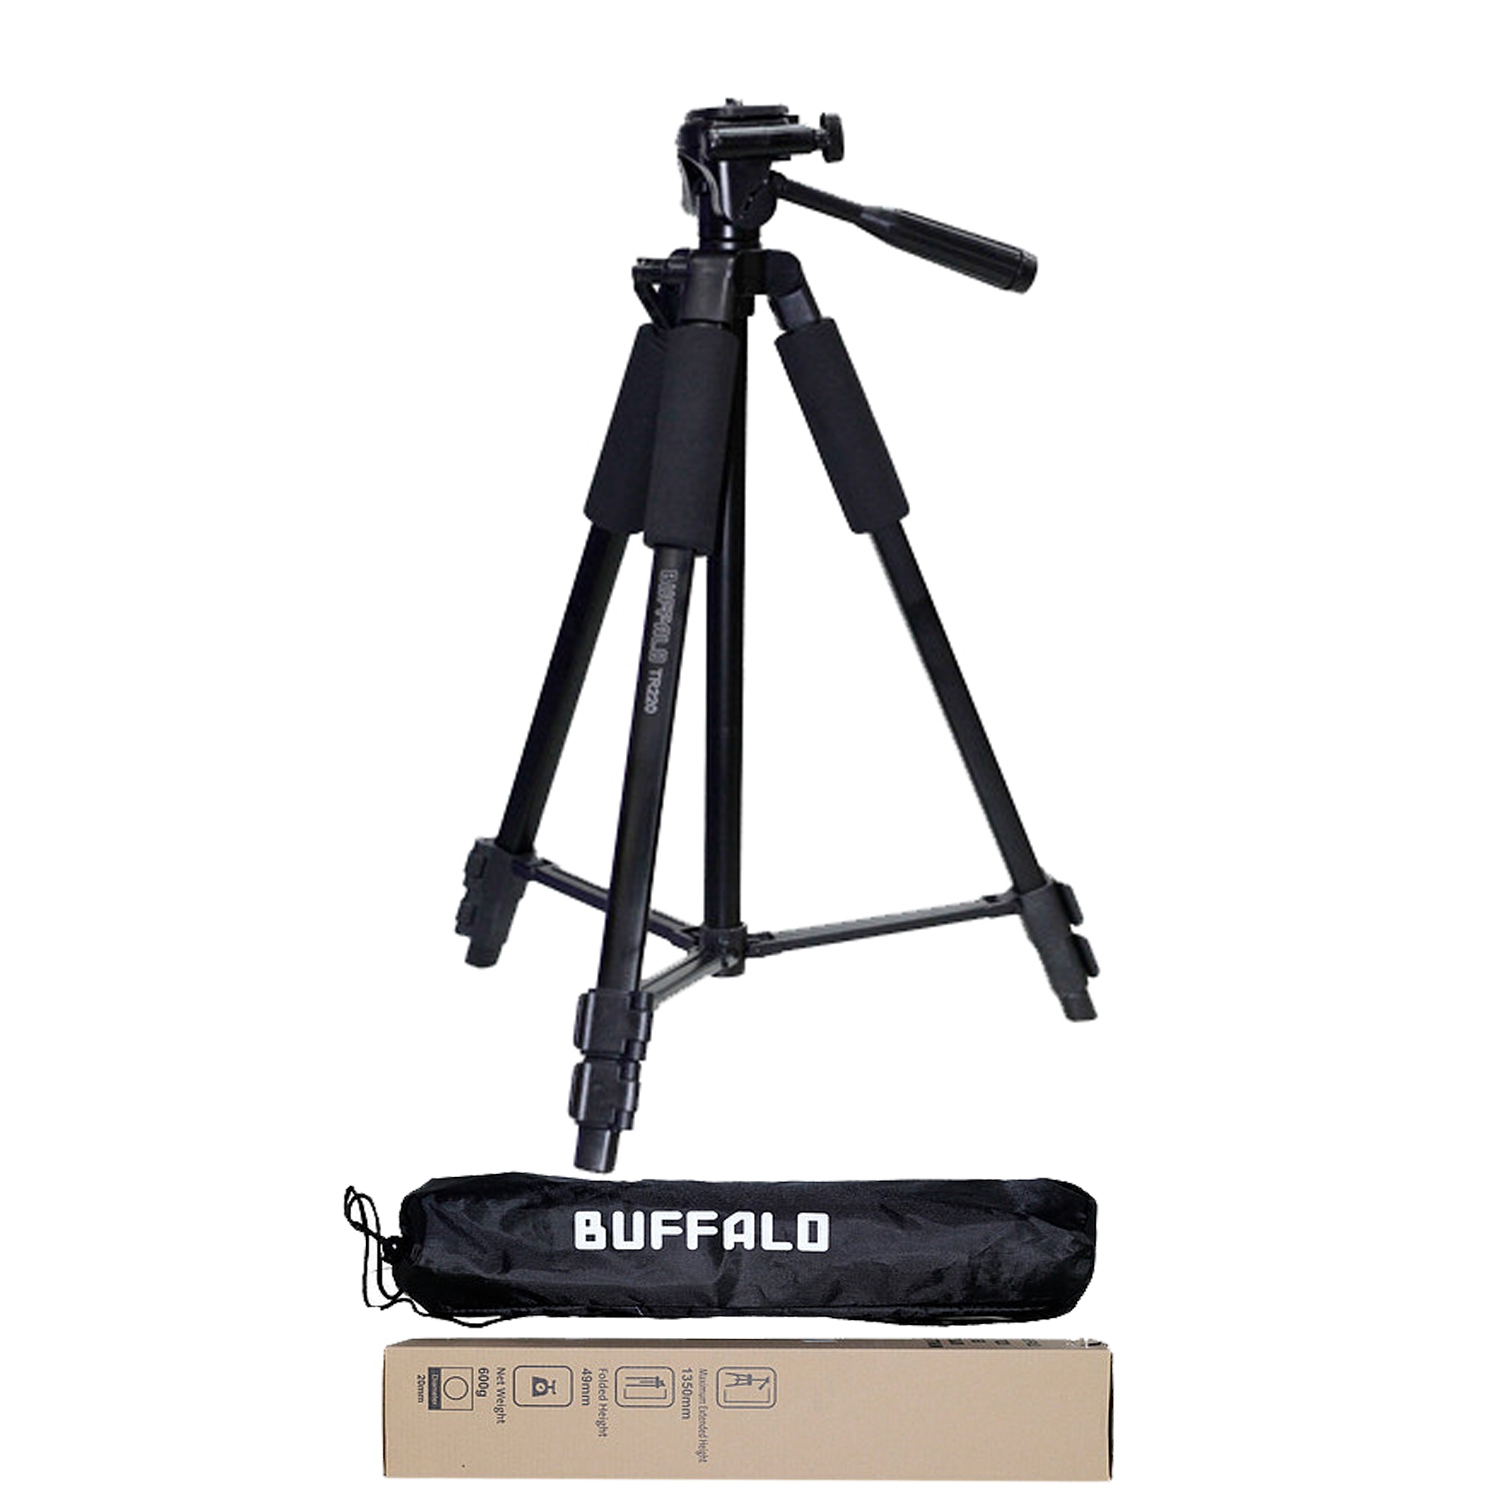 Buffalo TR-220 Camera Tripod 3-way head, 3 section closed channel leg